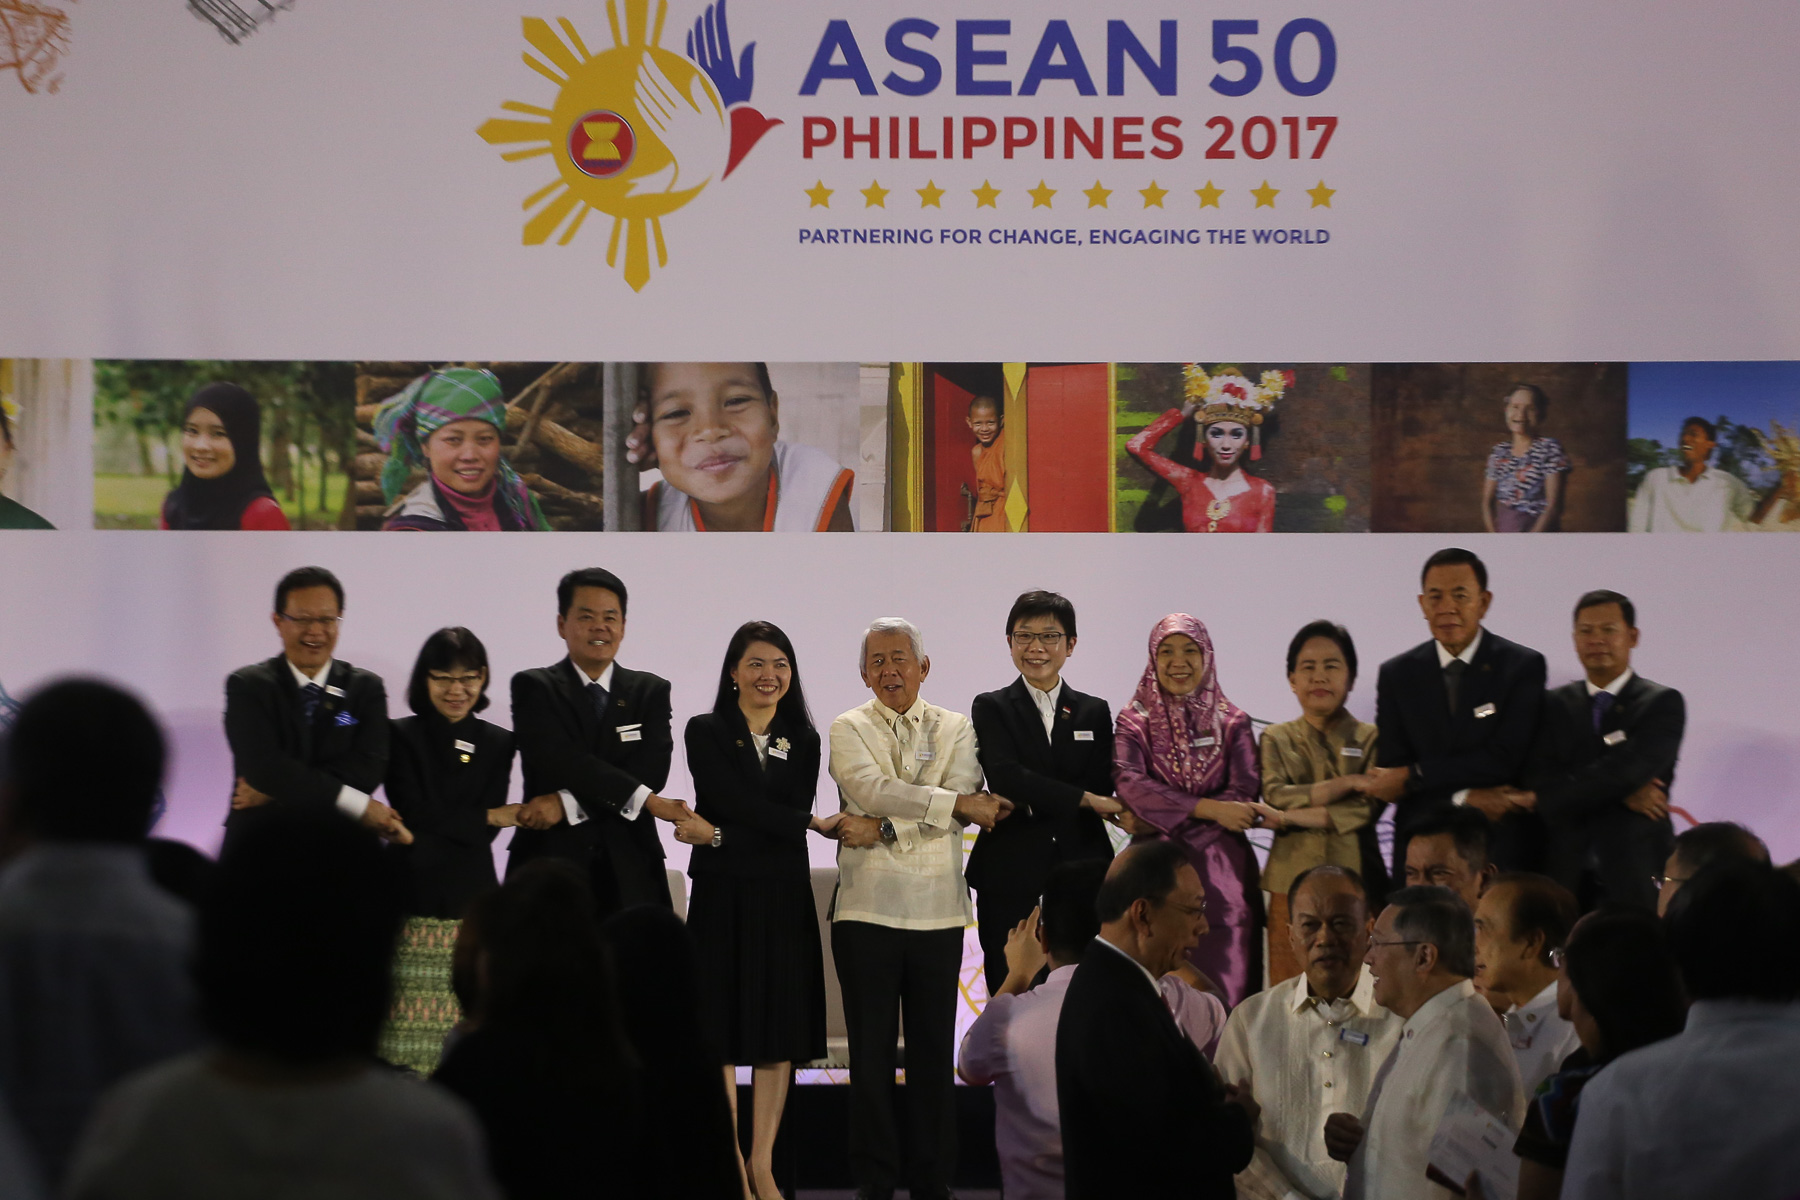 UNITY, COOPERATION. Foreign Secretary Perfecto Yasay Jr links hands with ASEAN diplomats. Photo by Manman Dejeto/Rappler